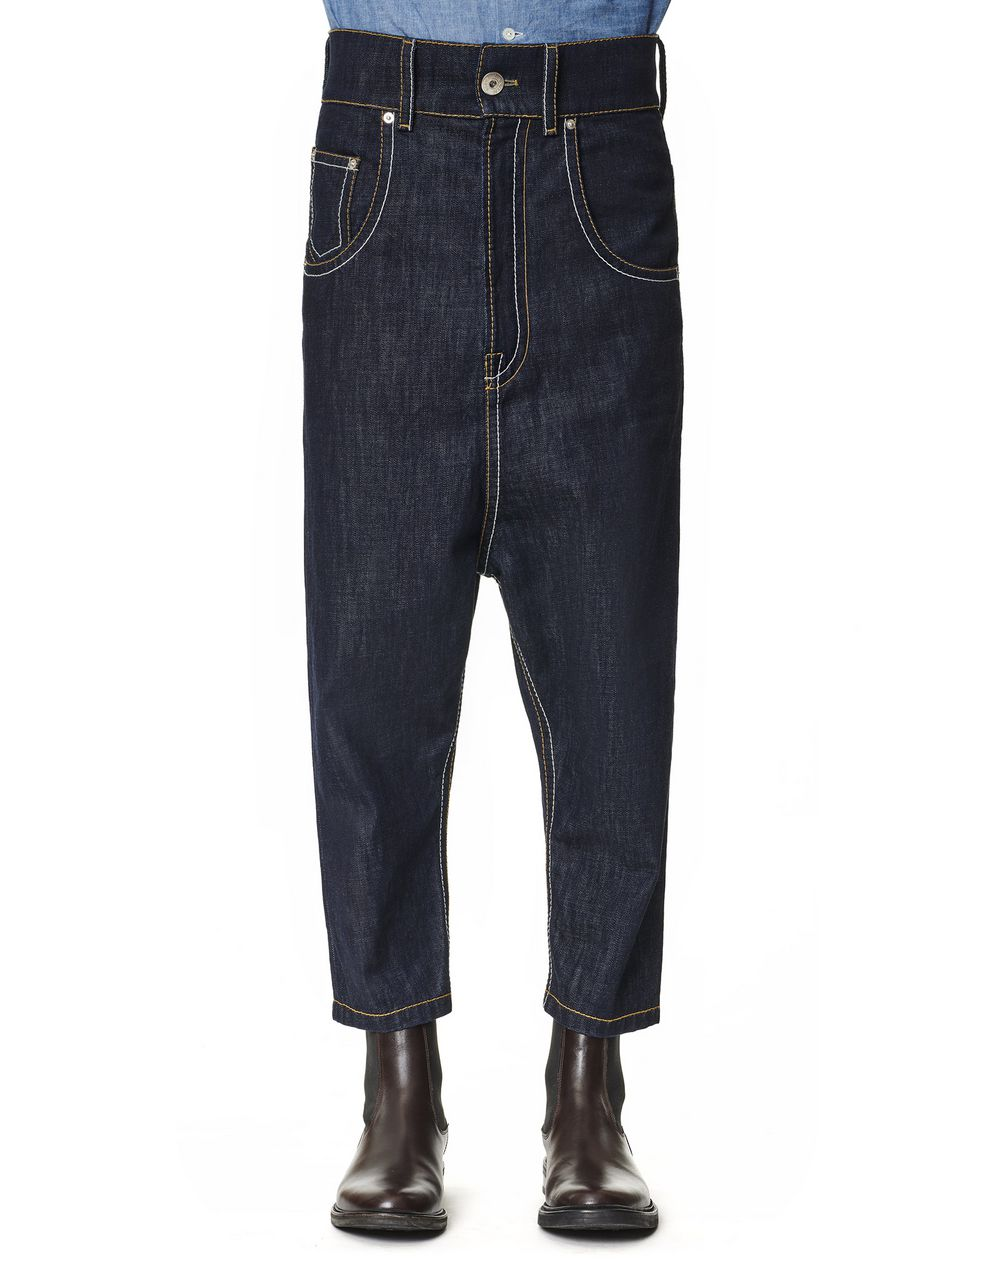 LOW CROTCH DENIM - Lanvin